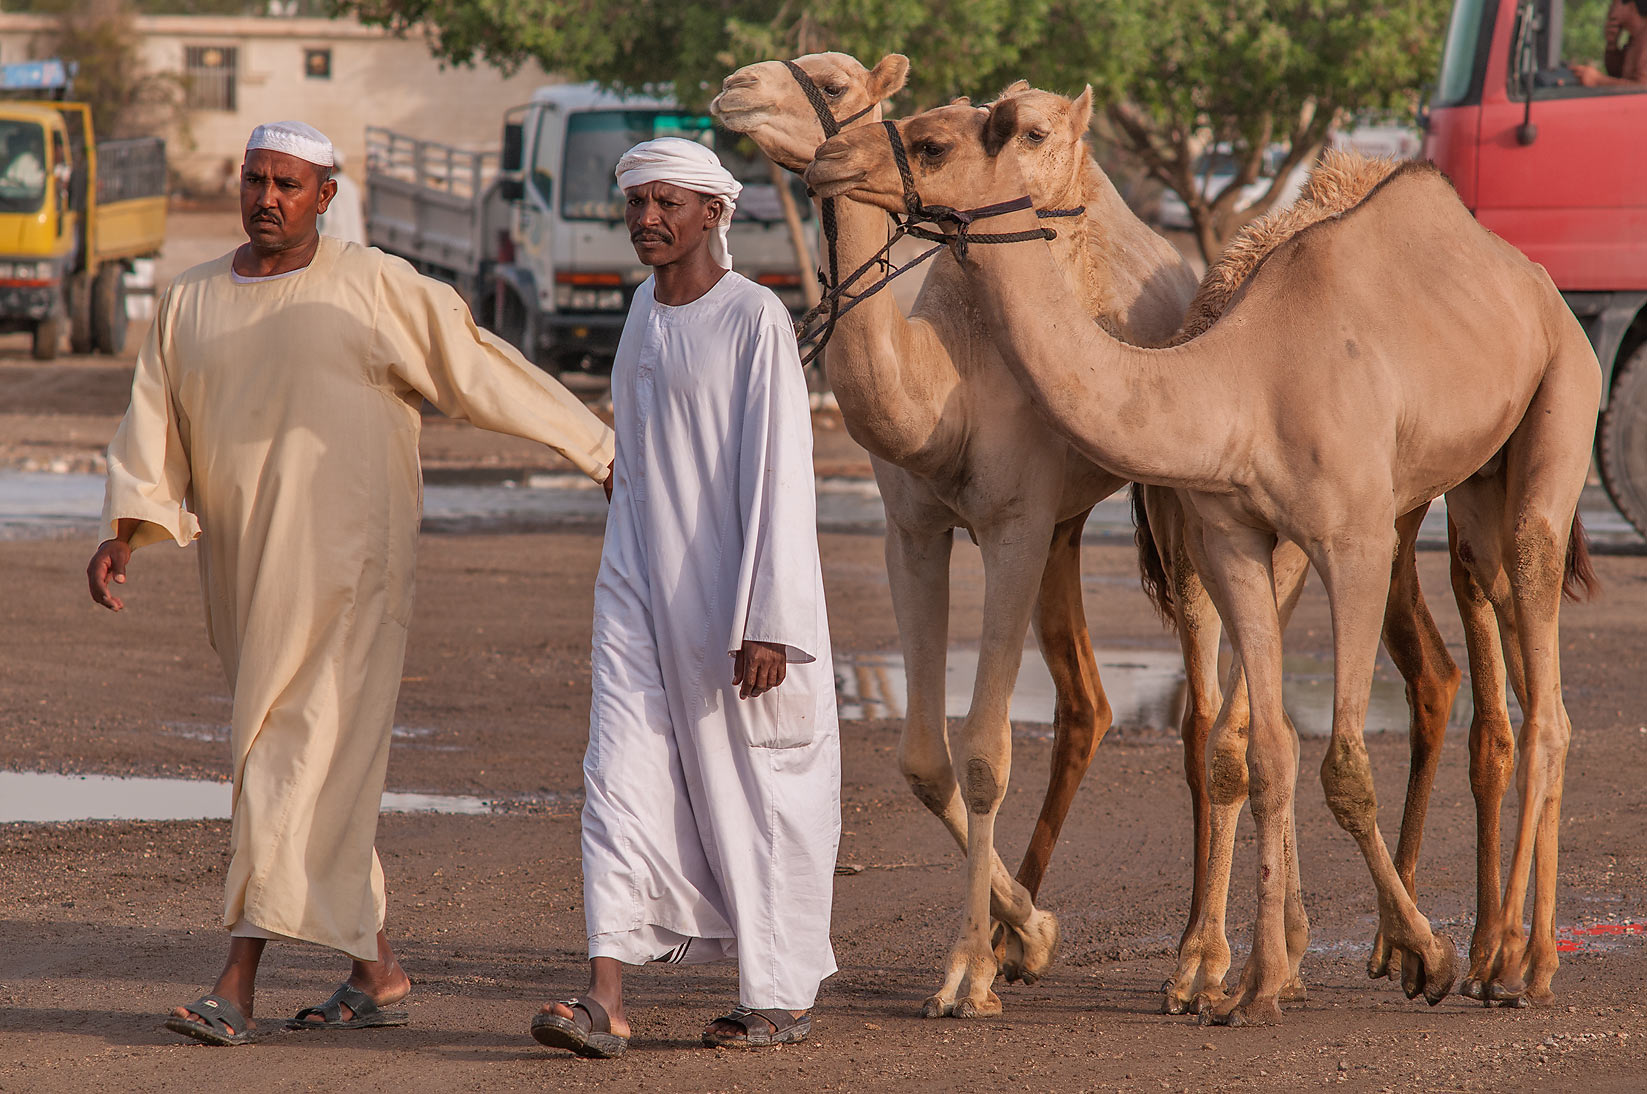 People with camels in livestock markets in Abu Hamour. Doha, Qatar